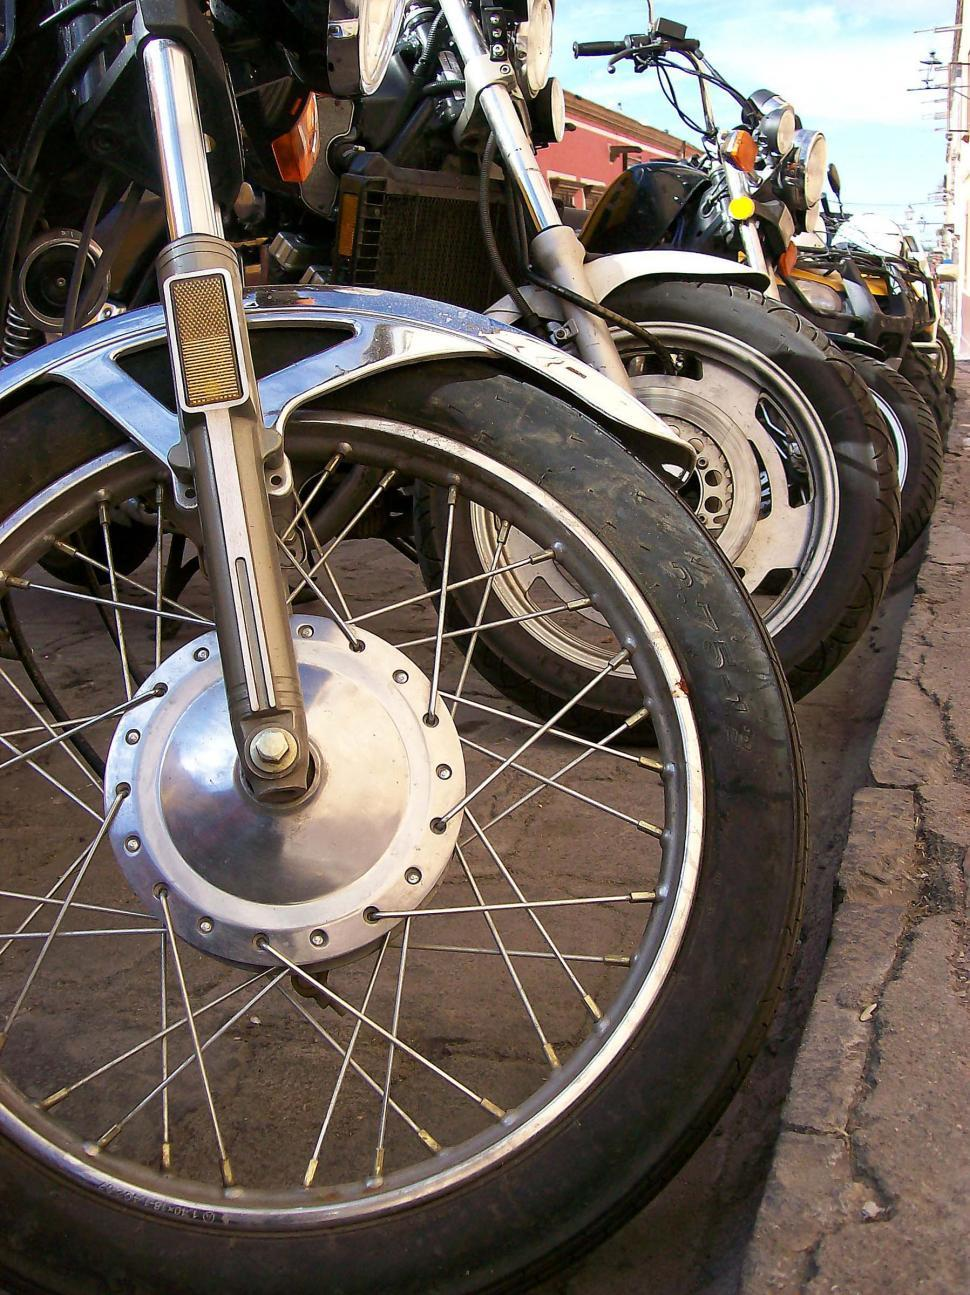 Download Free Stock Photo of Cycles At Curb